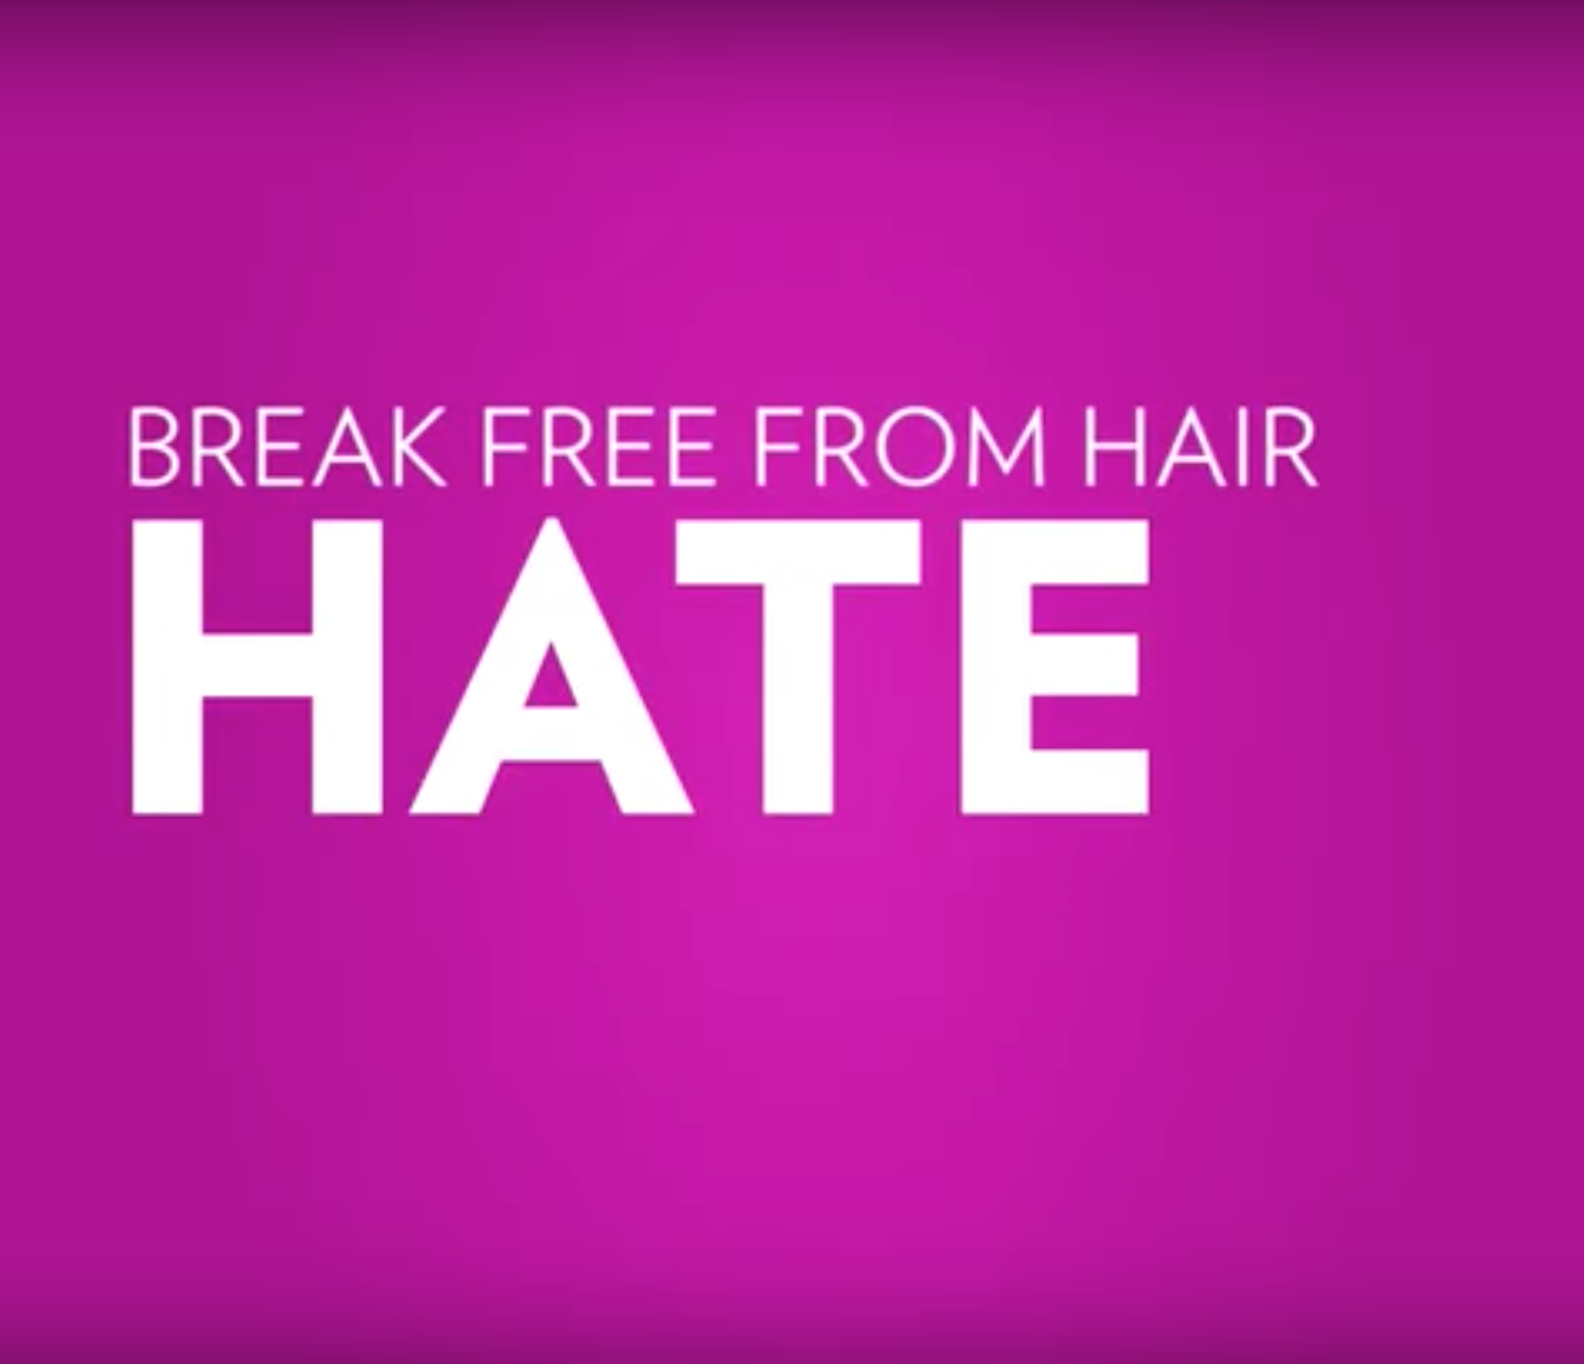 free from hair hate